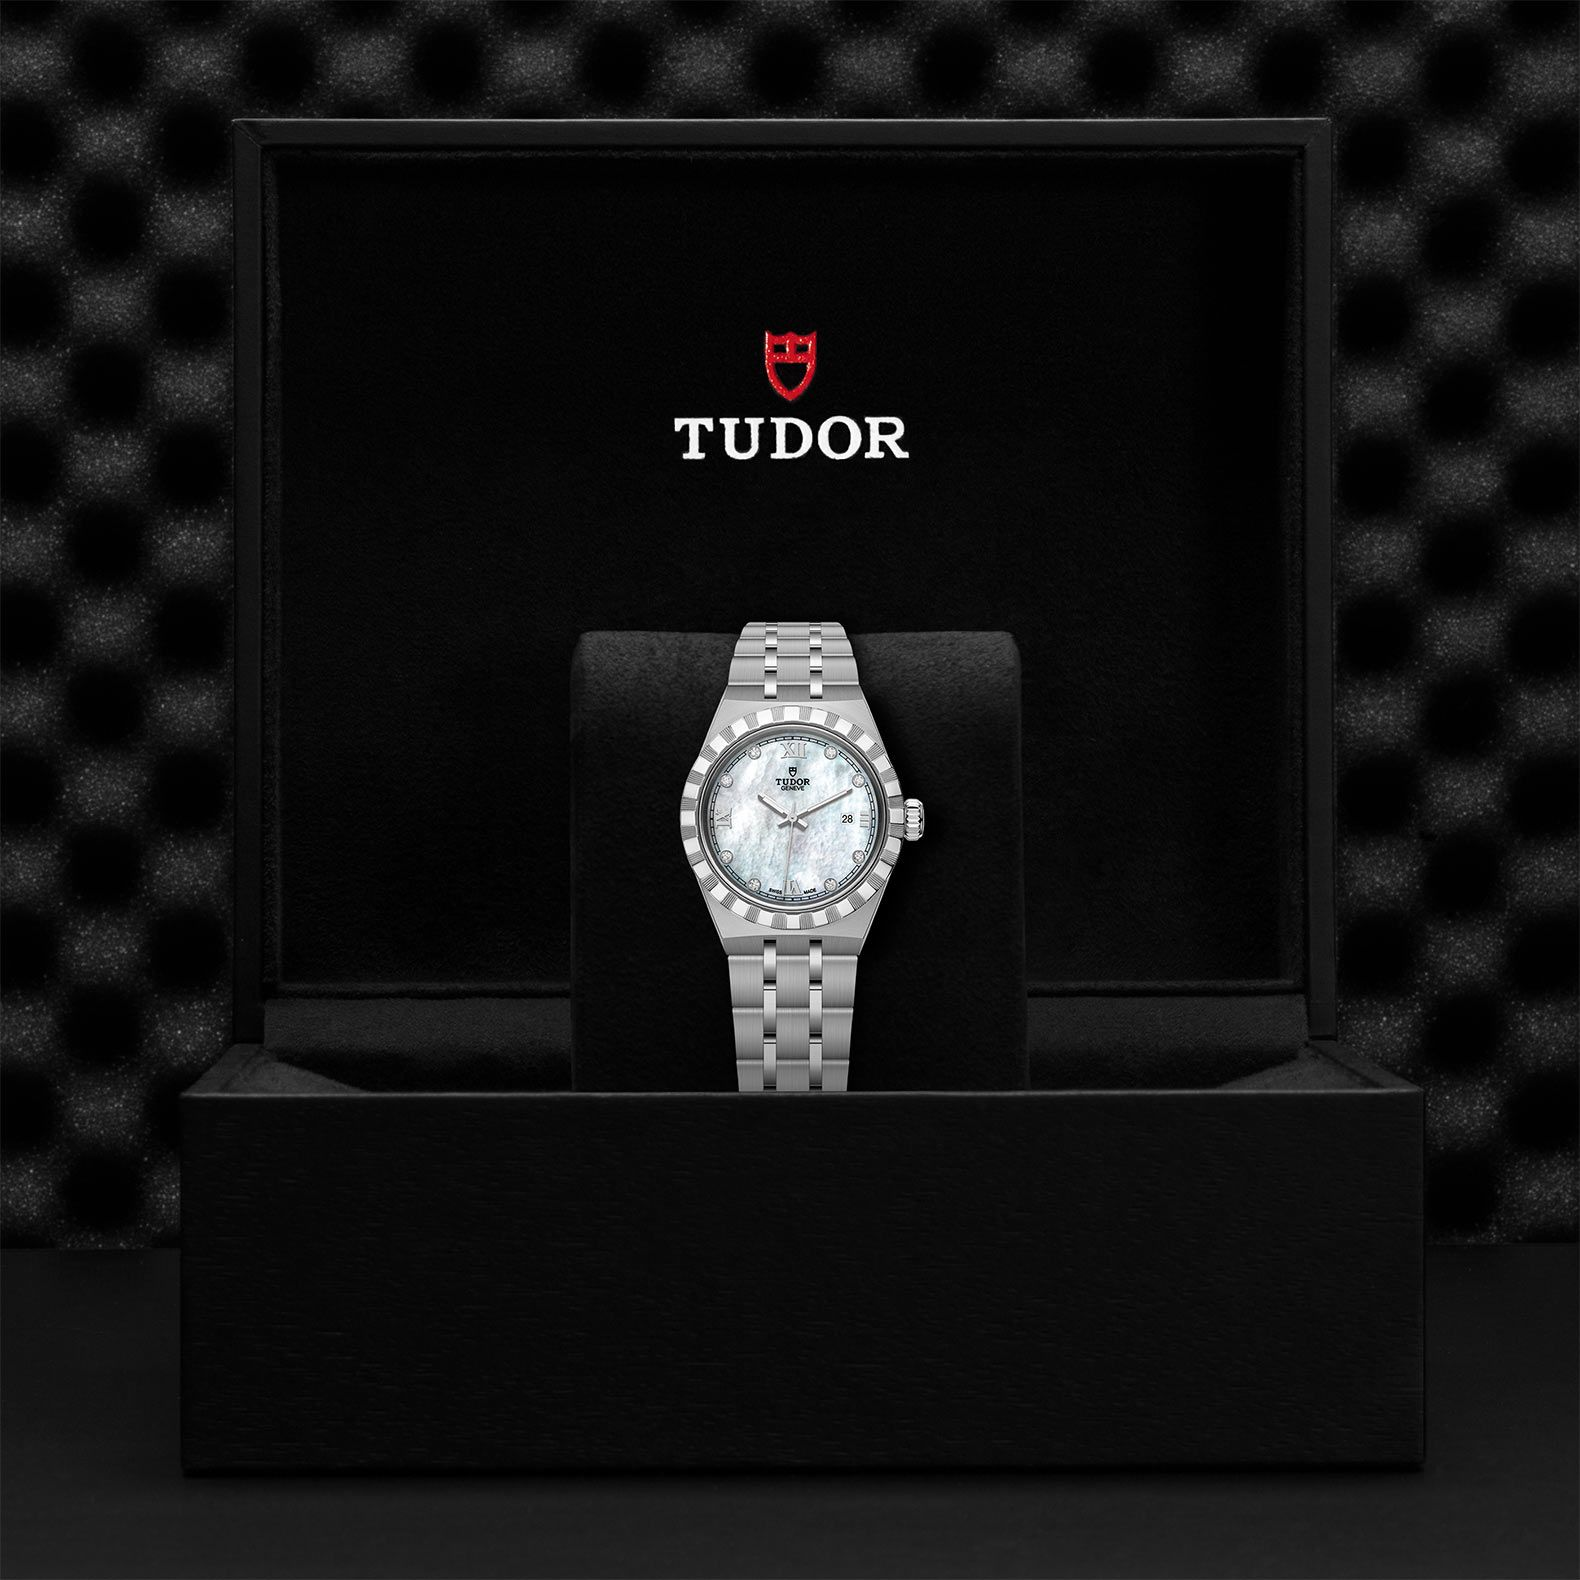 TUDOR ROYAL 28300 - 0005